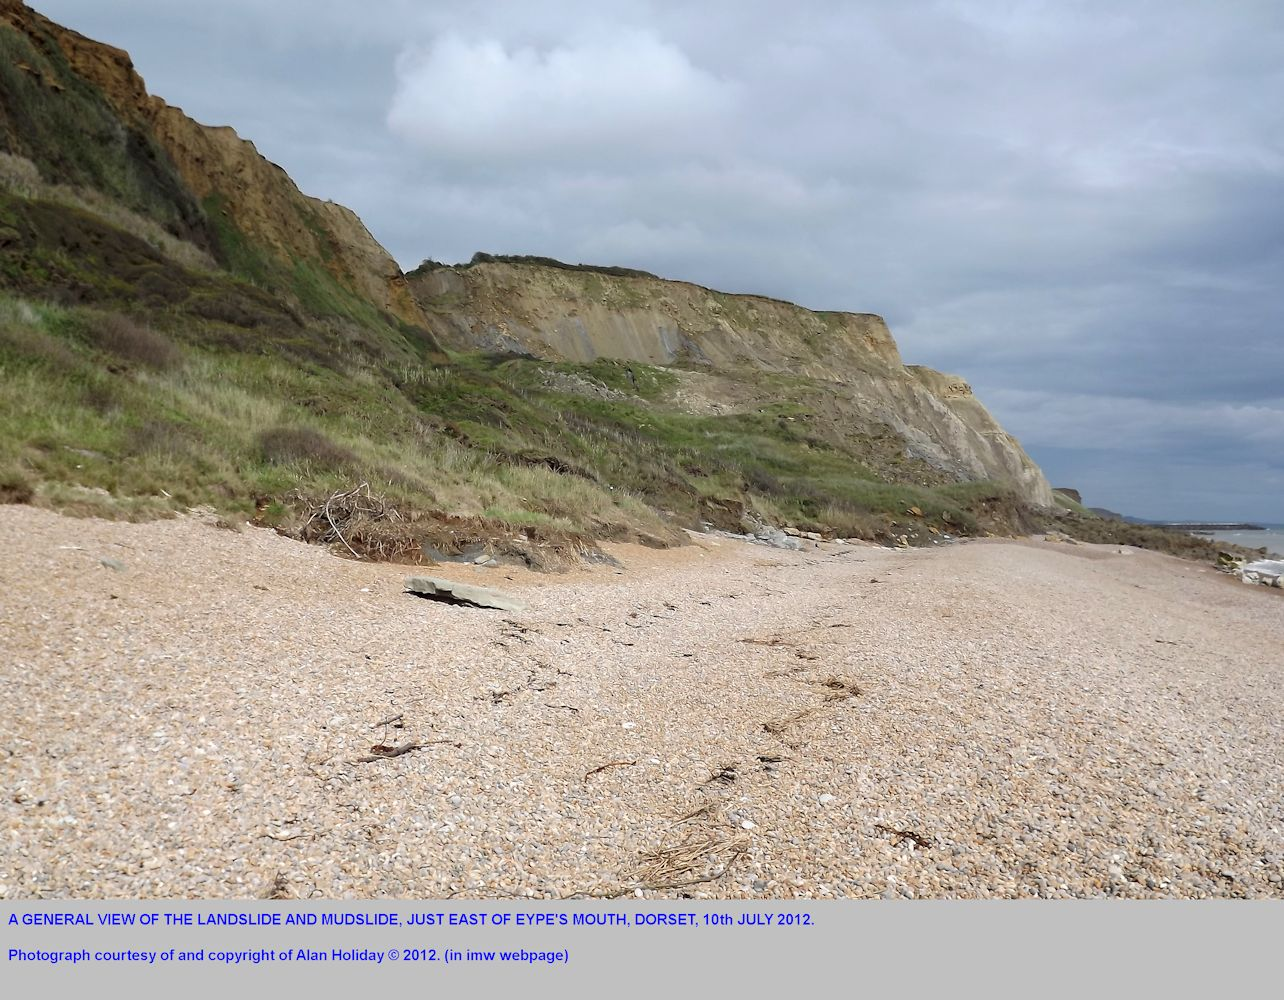 A general view of the mudslide east of Eype's Mouth, near Bridport, Dorset, 10th July 2012, photograph by Alan Holiday